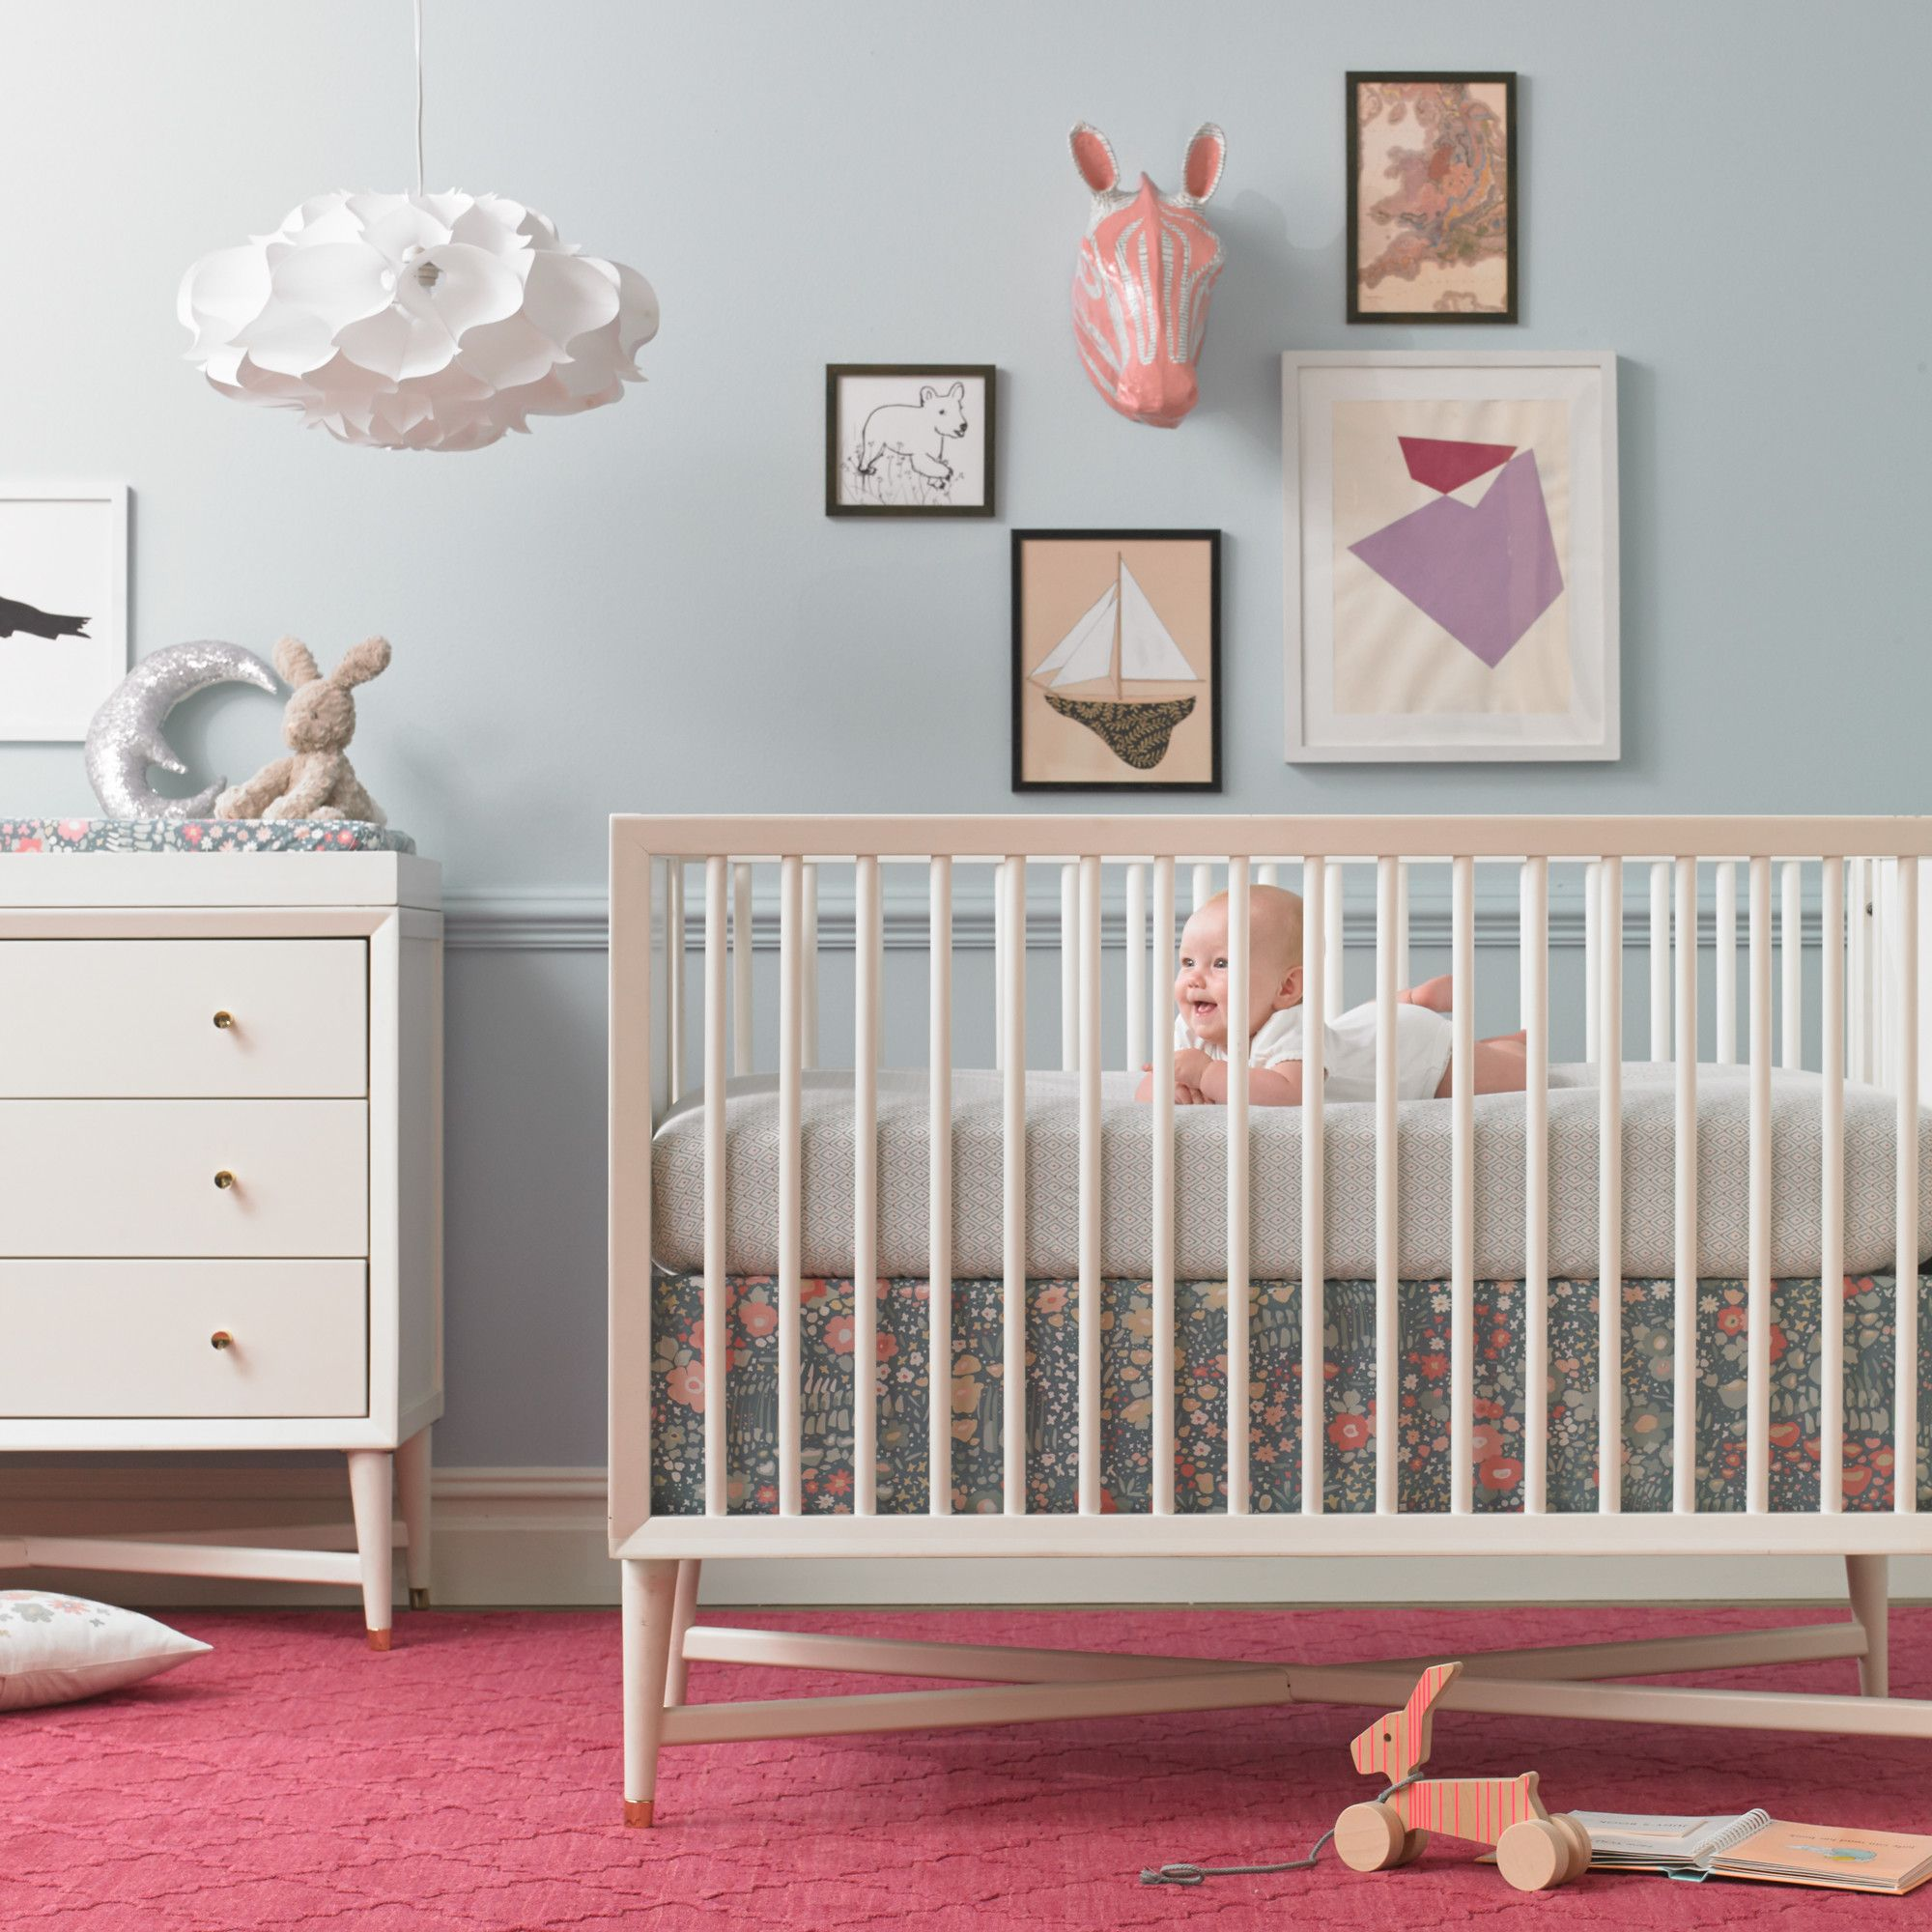 dwellstudio midcentury french white crib  dwellstudio  kids  - dwellstudio midcentury french white crib  dwellstudio